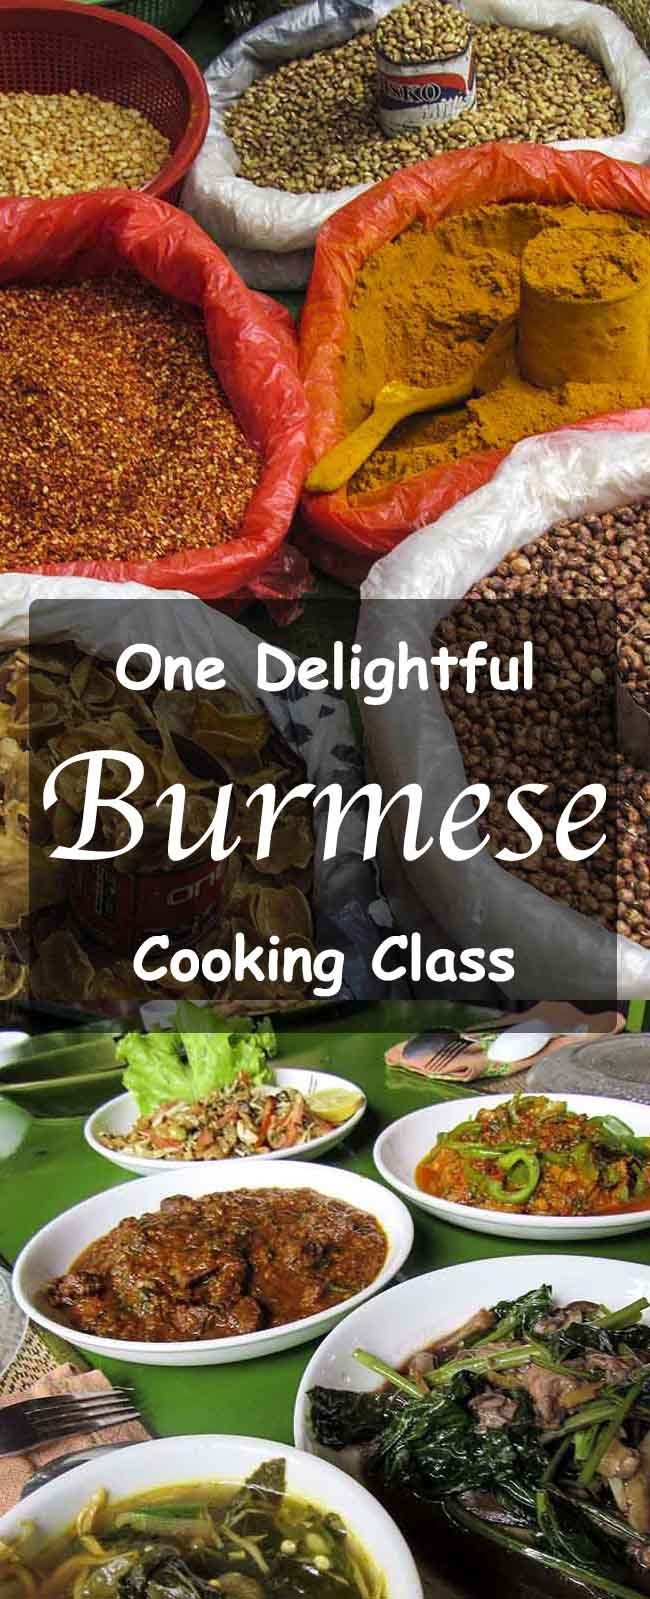 One Delightful Burmese Cooking Class Cooking Cooking Classes Food